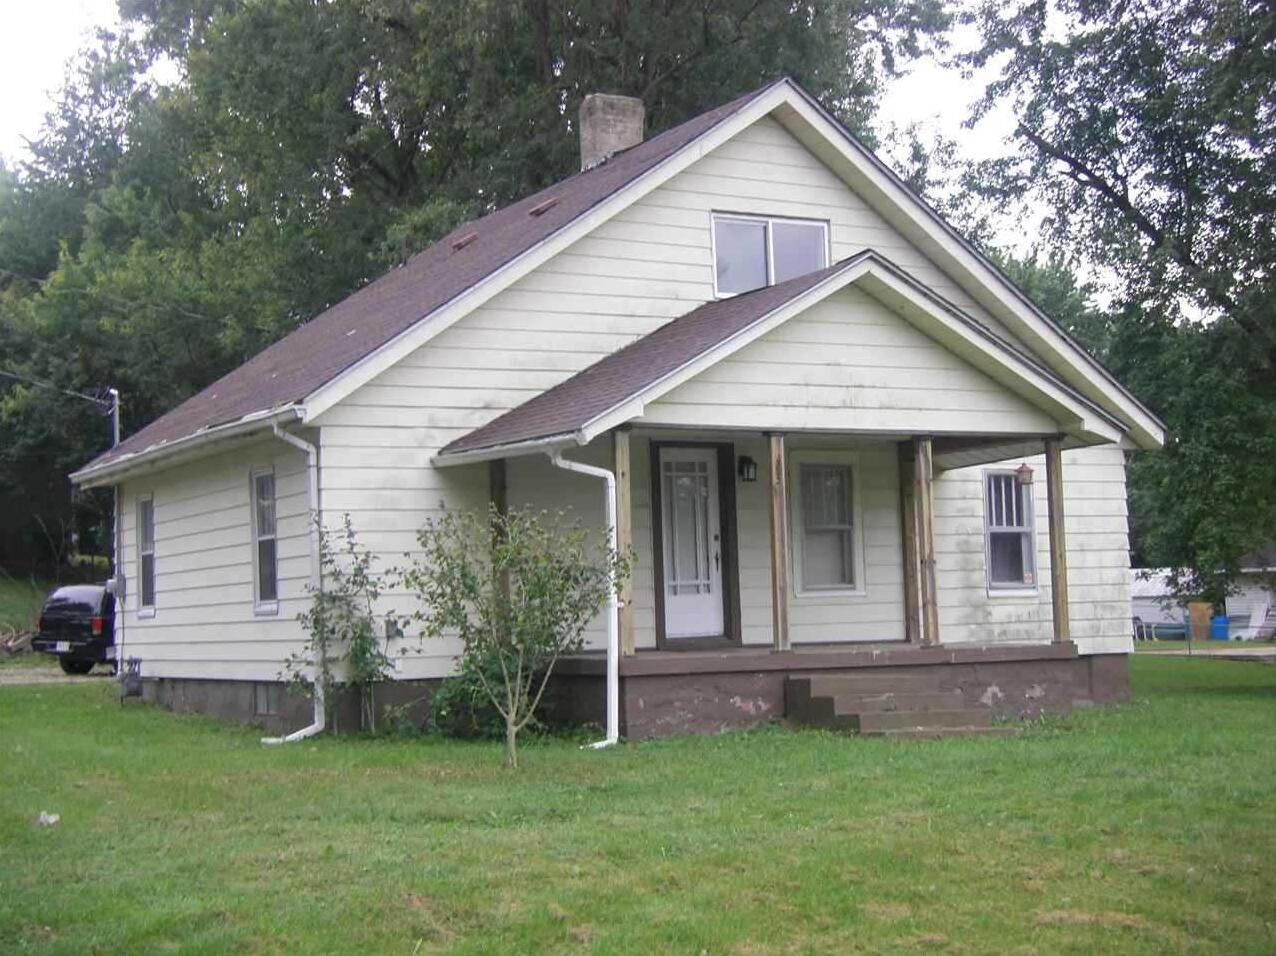 Photo of 73 Lockhart Place West Terre Haute IN 47885